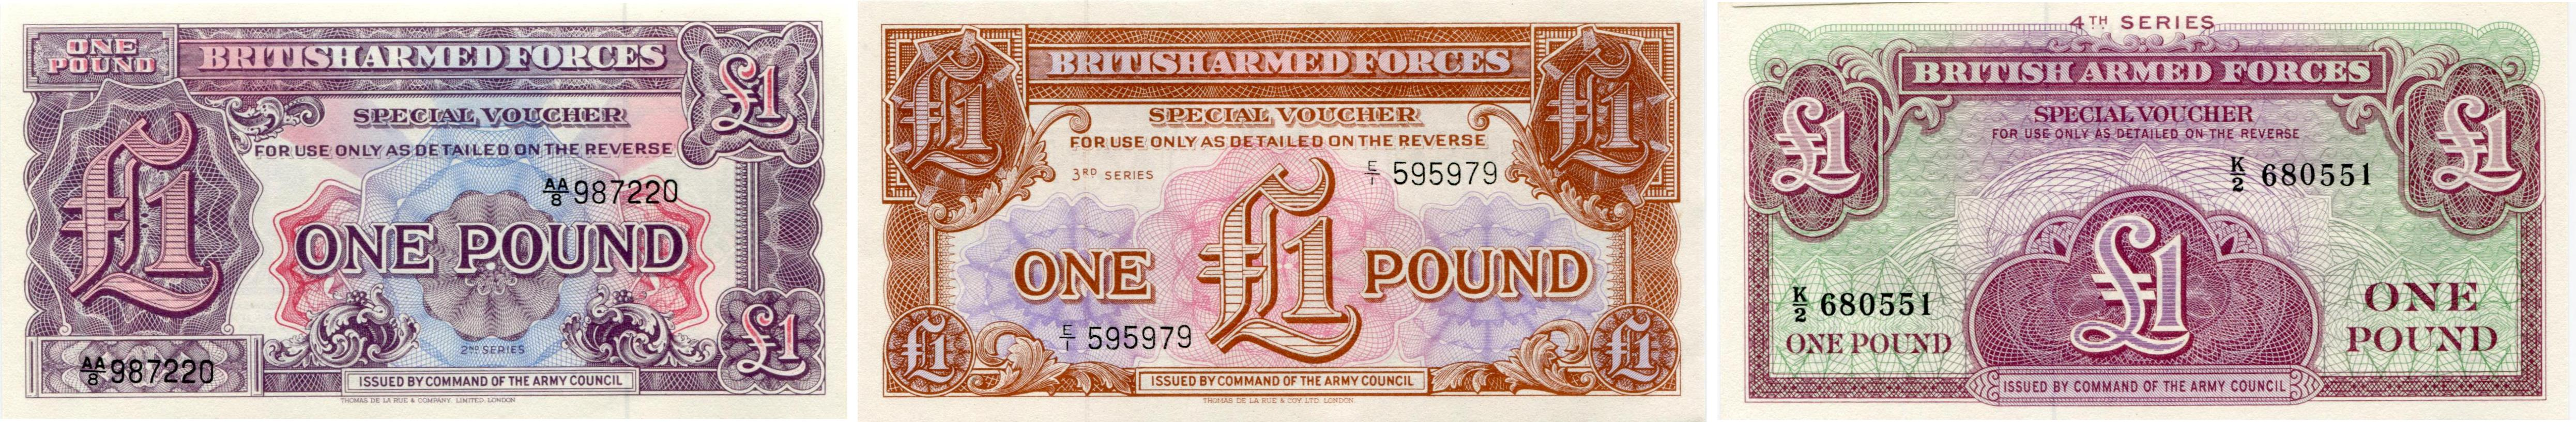 British Coins Currency And Tokens